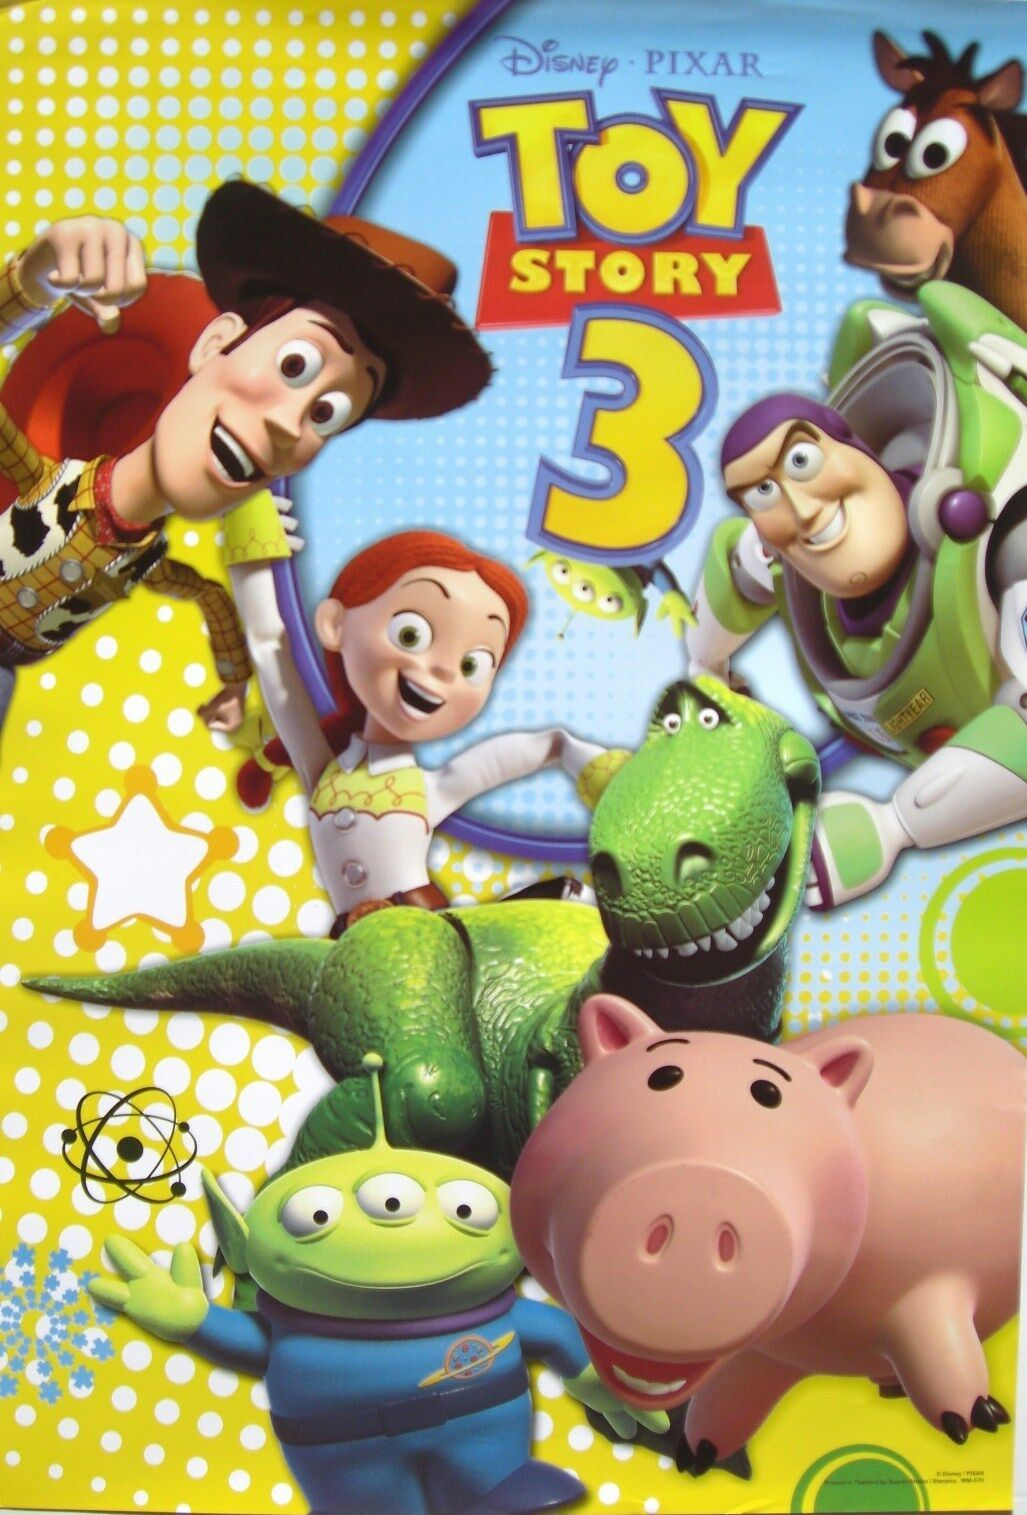 DISNEY/PIXAR U0026quot;TOY STORY 3u0026quot; POSTER - Woody Buzz U0026 Cast Of Characters All Smiling | EBay